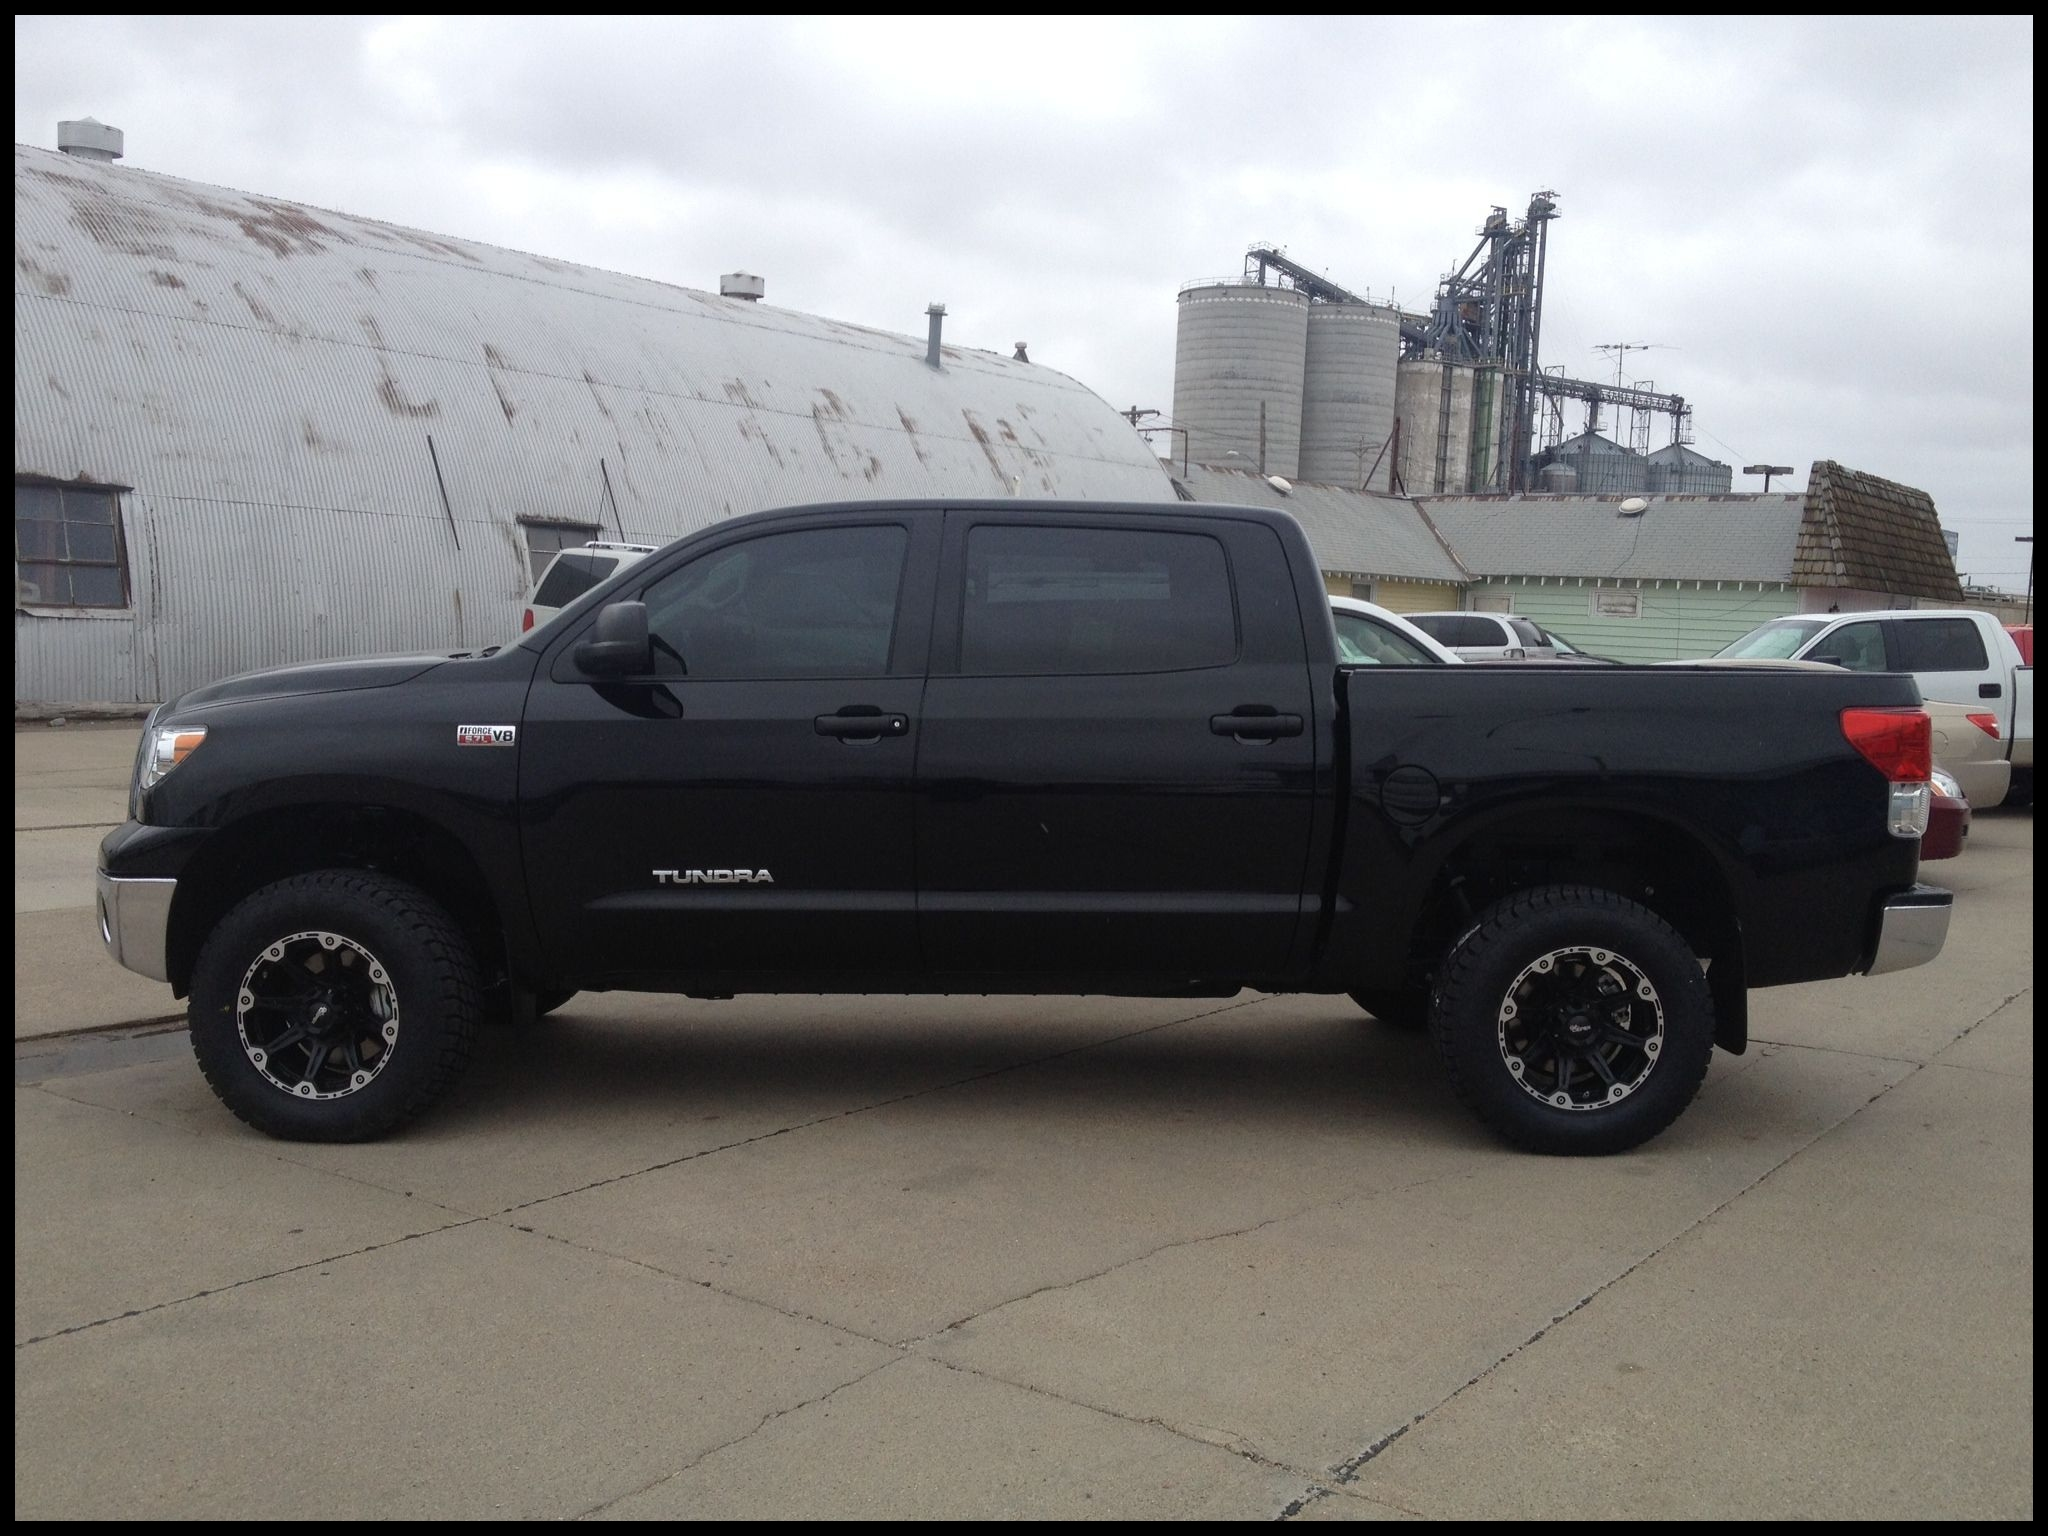 News Our 2013 Tundra 2 1 2 1 Leveling Kit Dick Cepek torque Wheels New Exterior